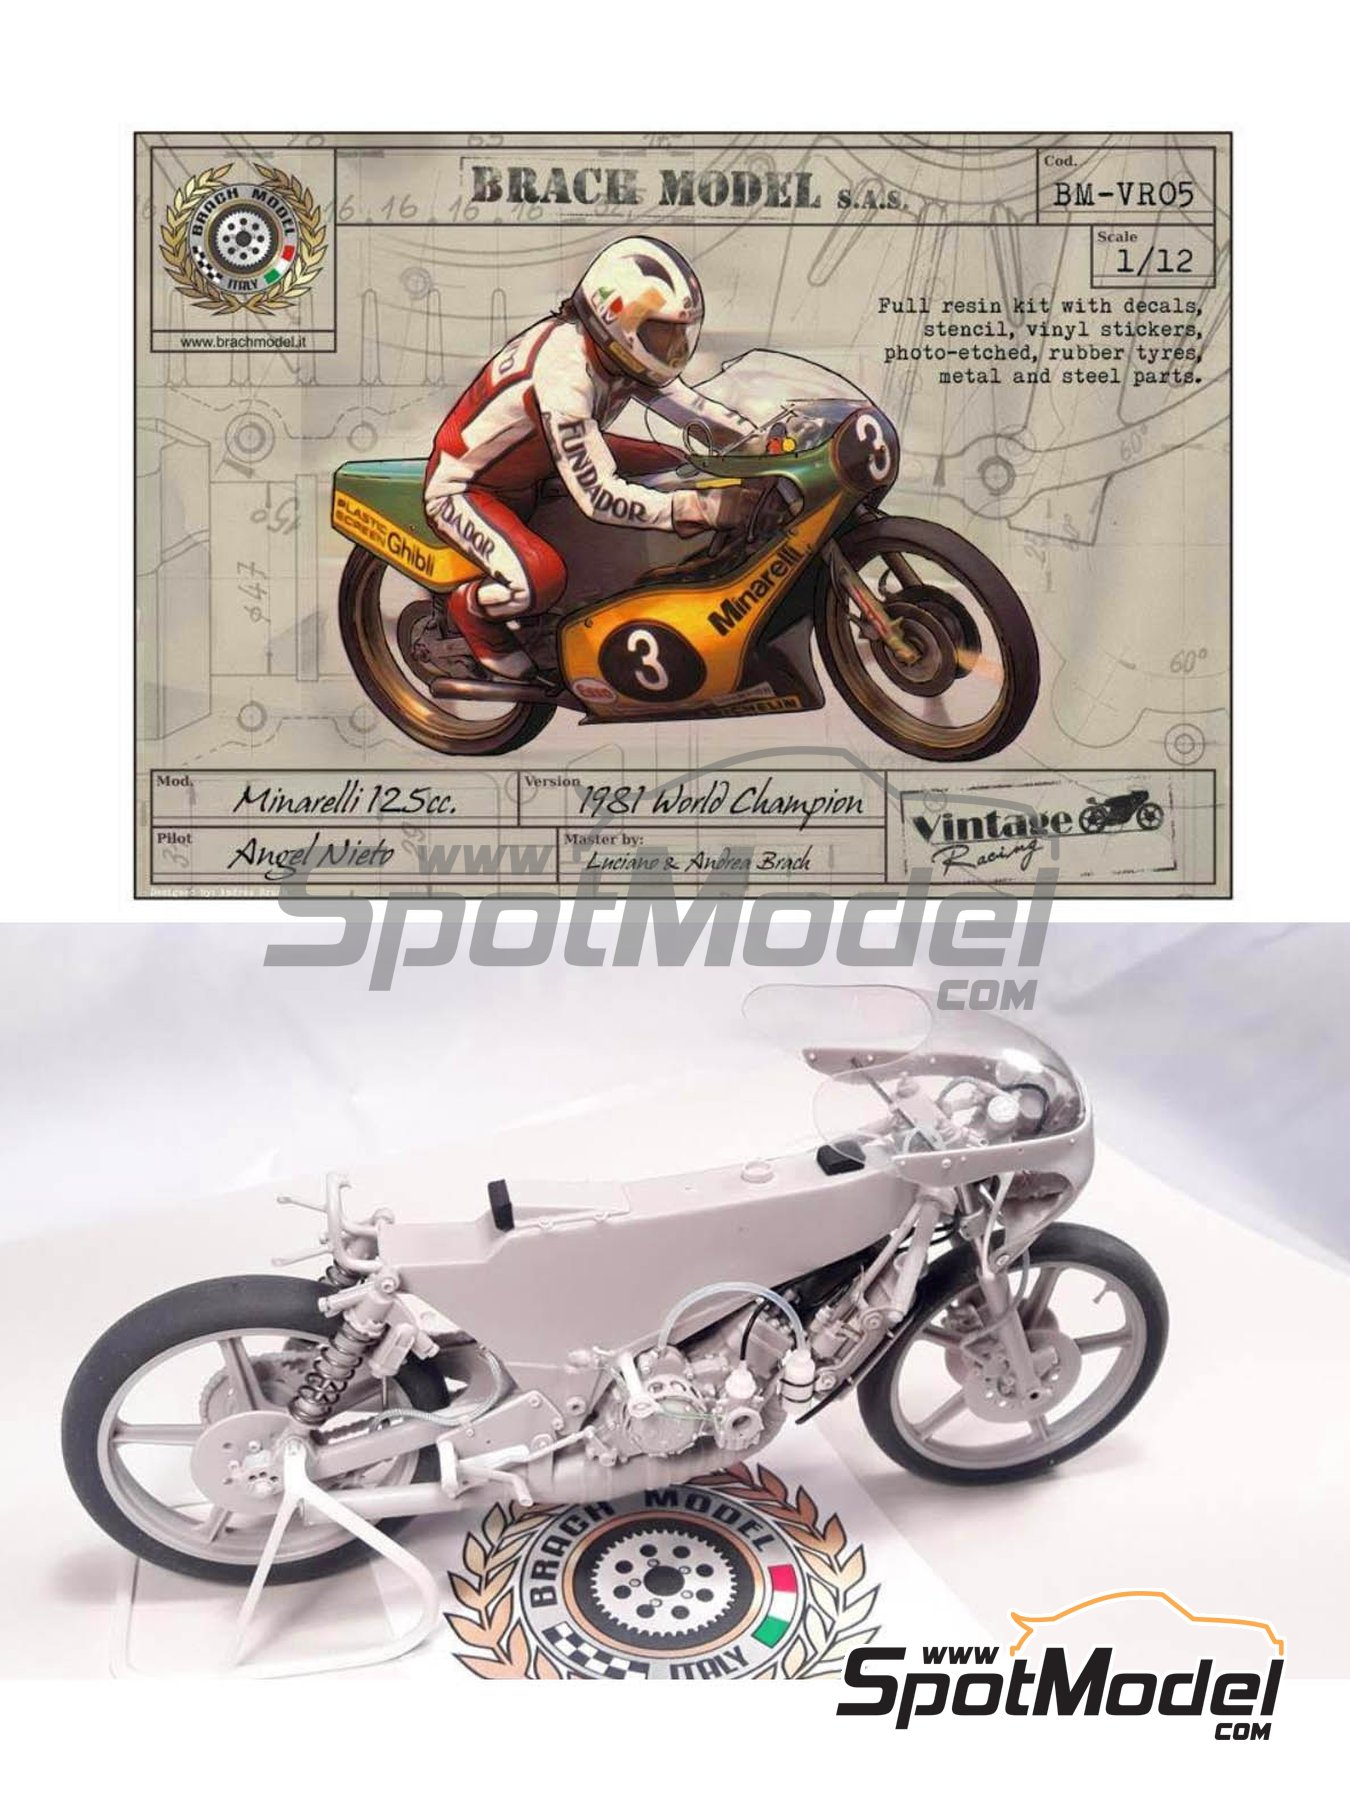 Minarelli 125cc - Motorcycle World Championship 1981 | Model bike kit in 1/12 scale manufactured by Brach Model (ref. BM-VR05) image